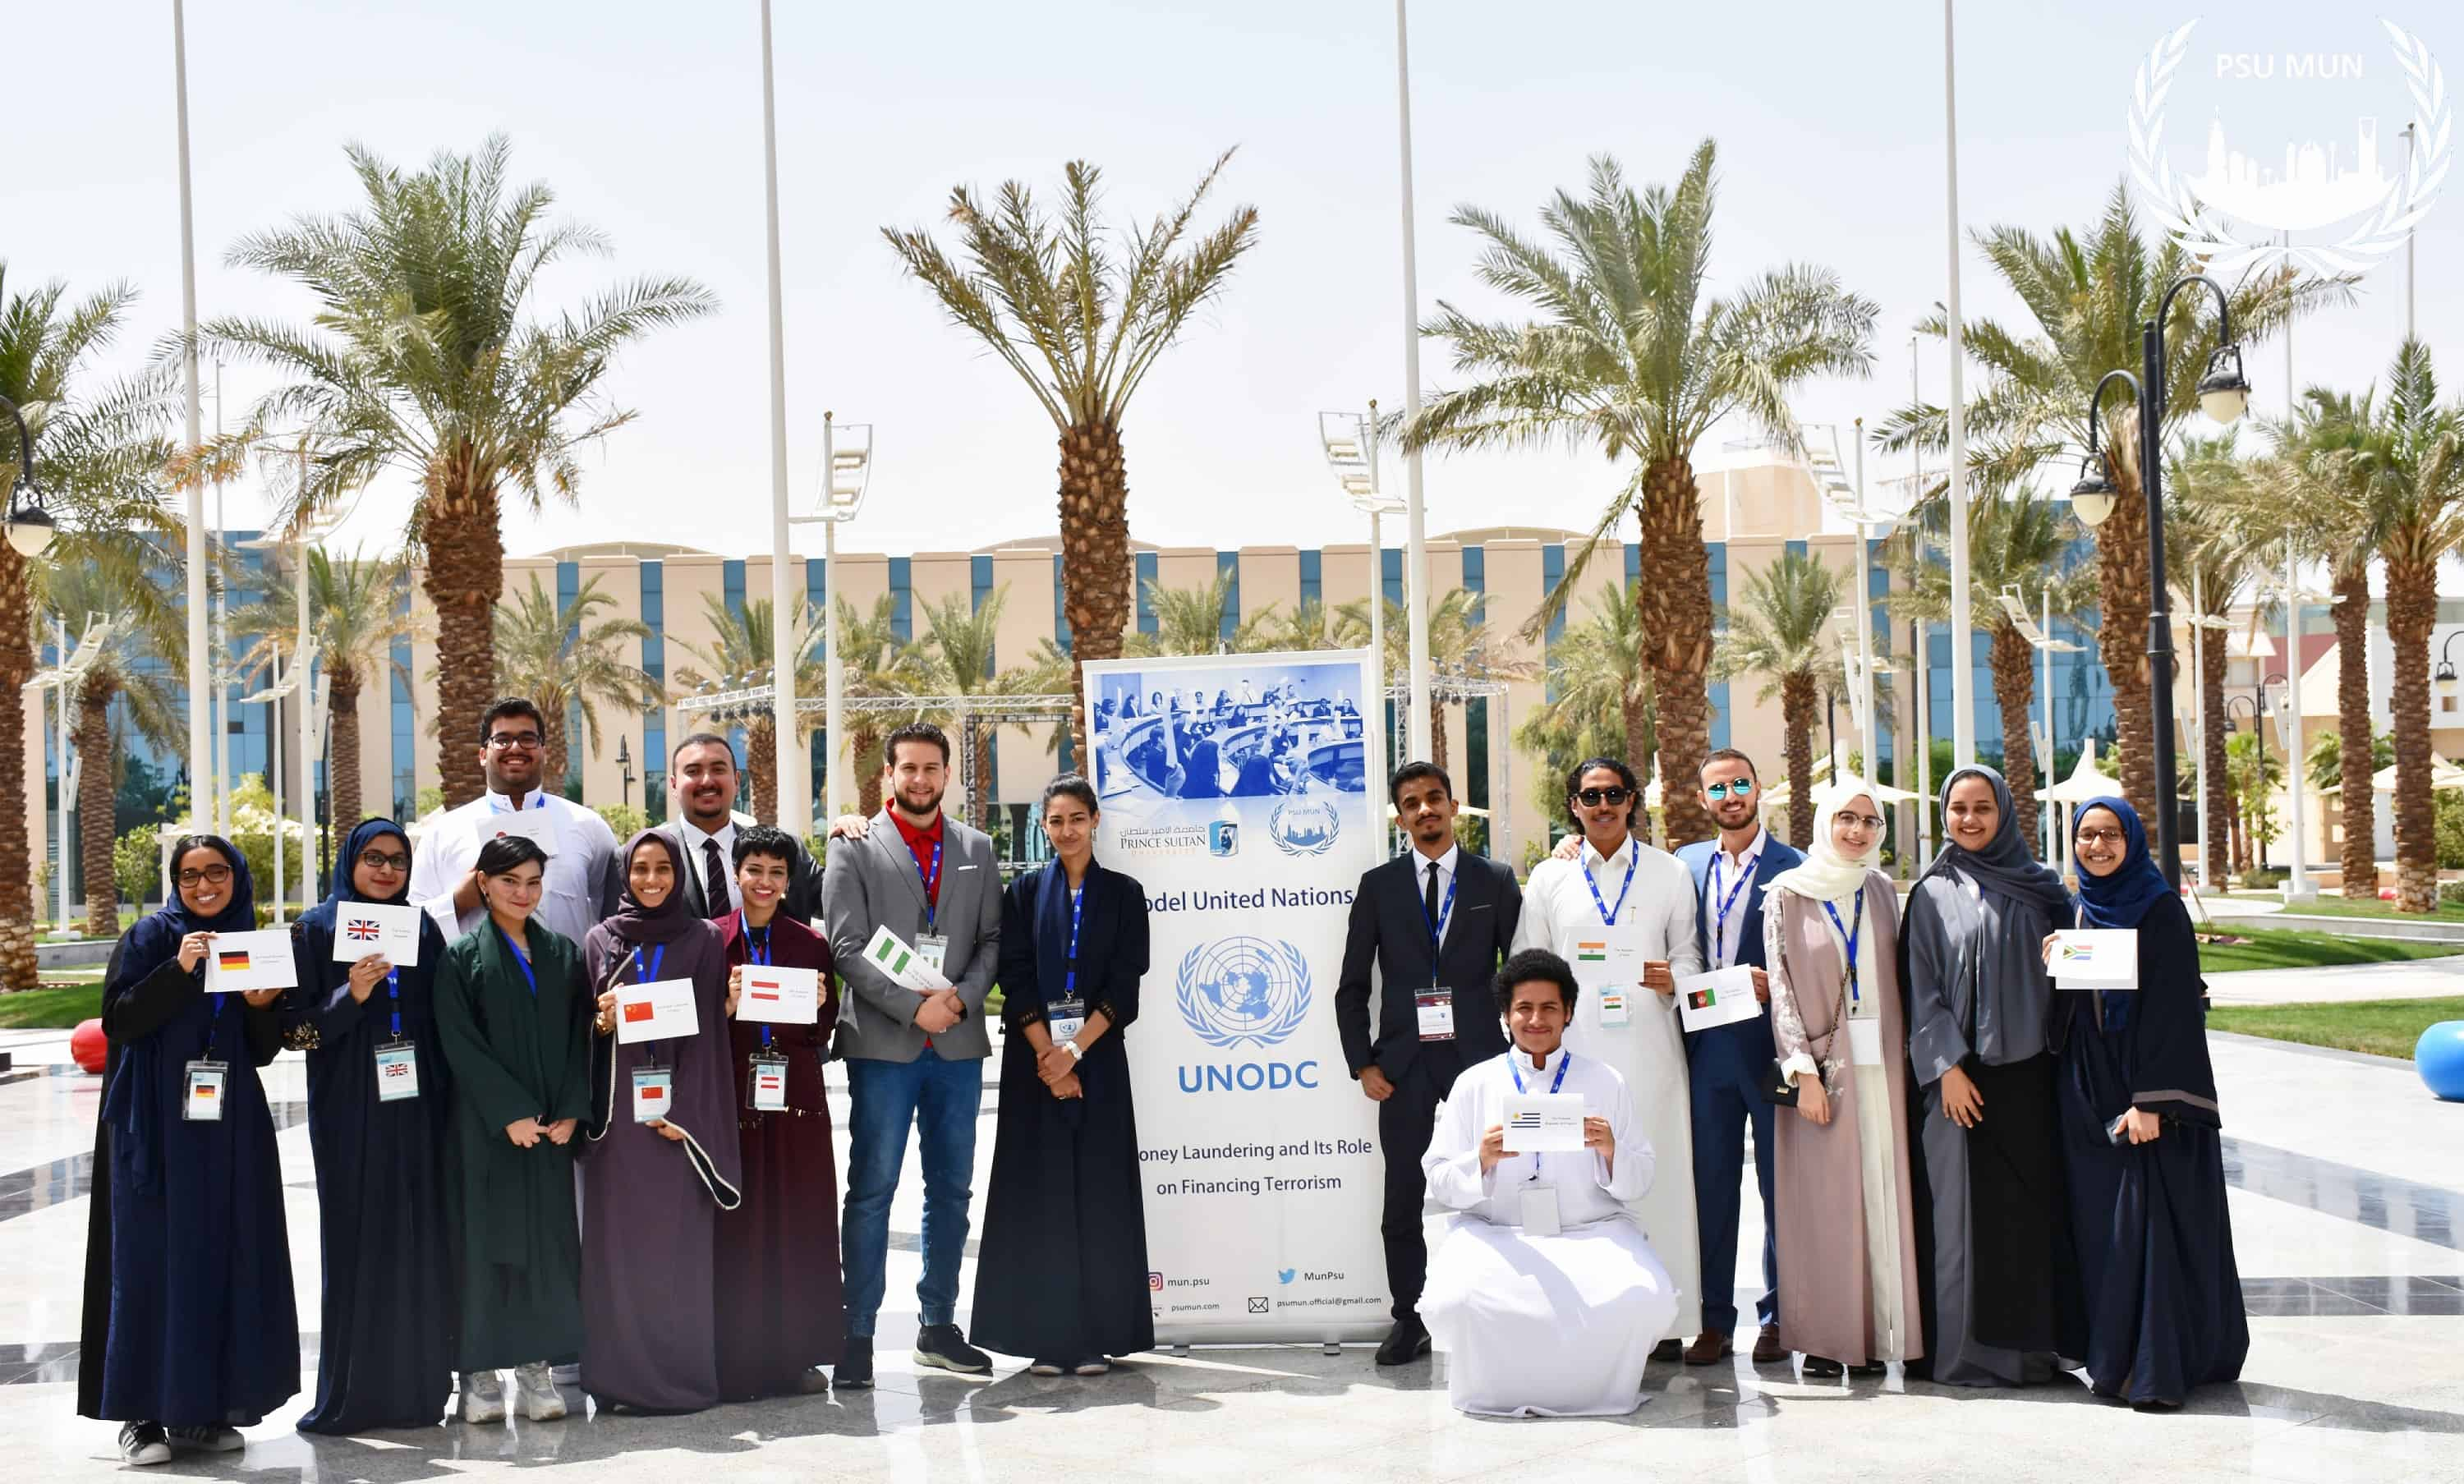 Prince Sultan University Organized (Model United Nations) for the First Time, 80 Applicants out of 300 Applicants were Accepted from all over Saudi Arabia